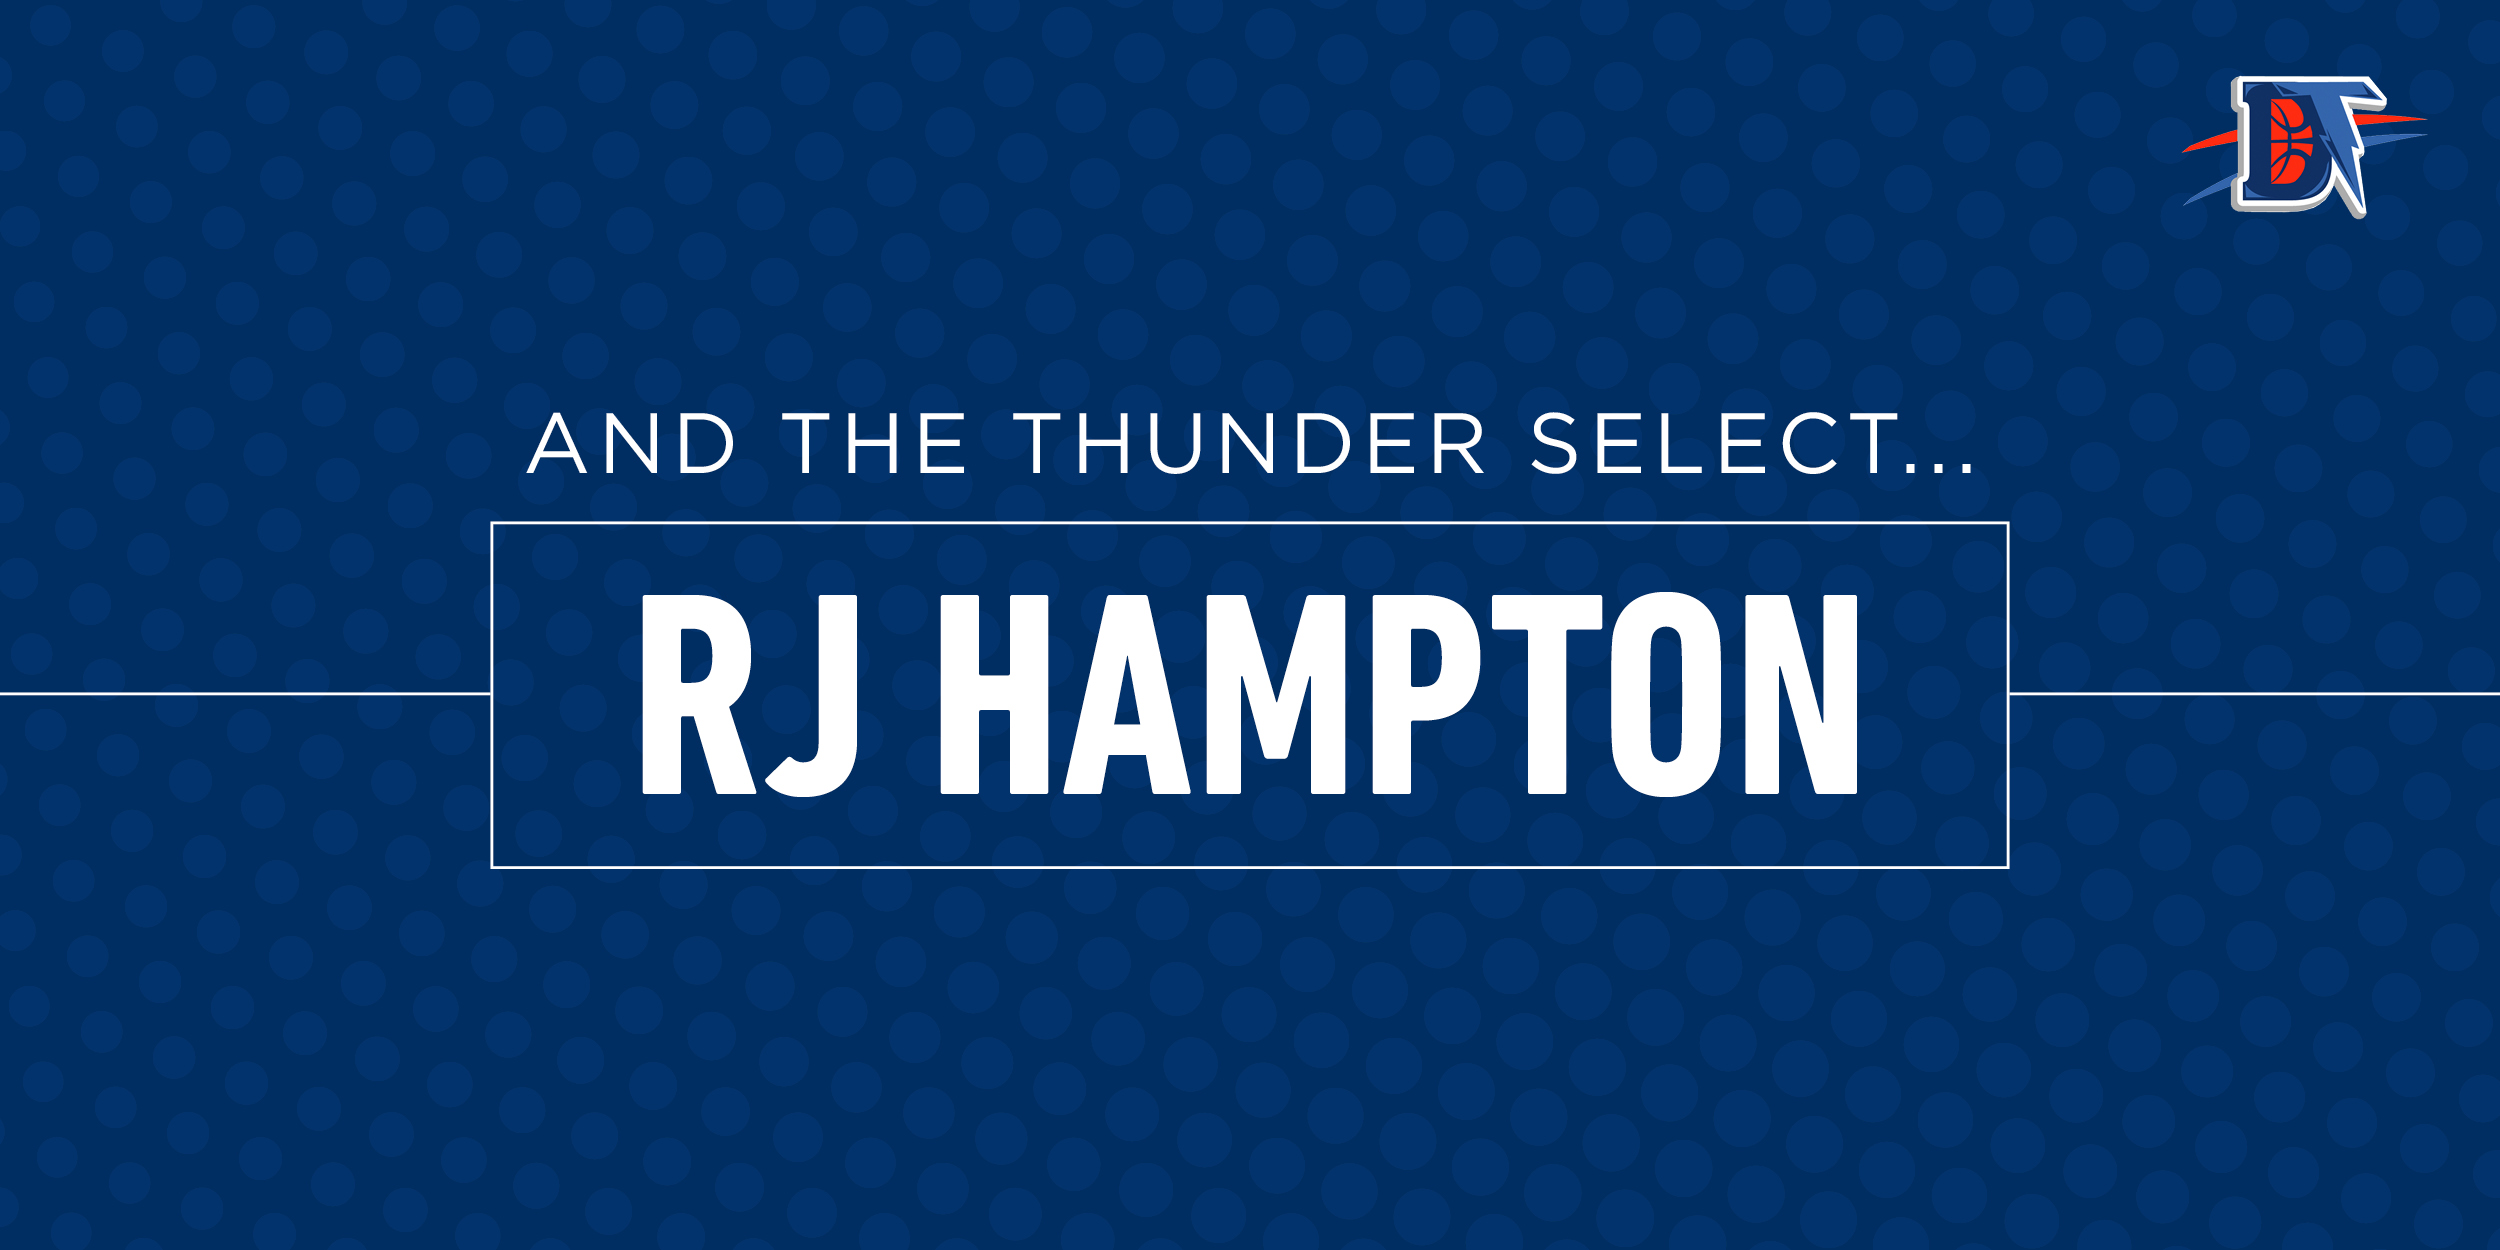 And the Thunder Select: R.J. Hampton